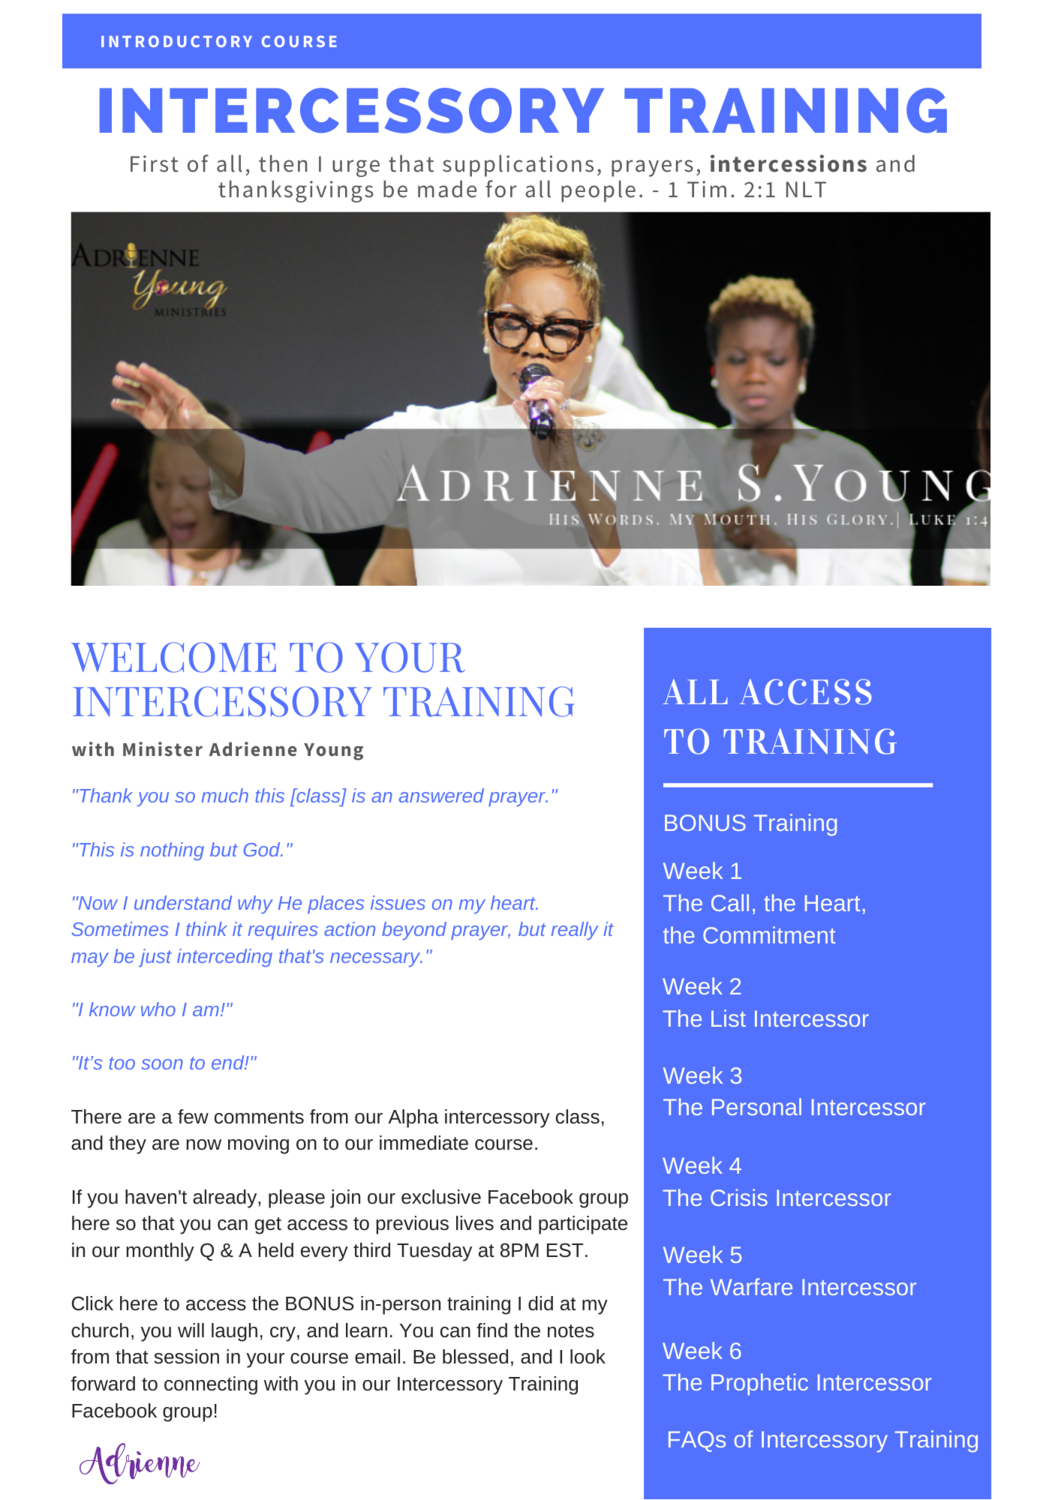 Introduction to Intercessory Training 6-Week Online Course